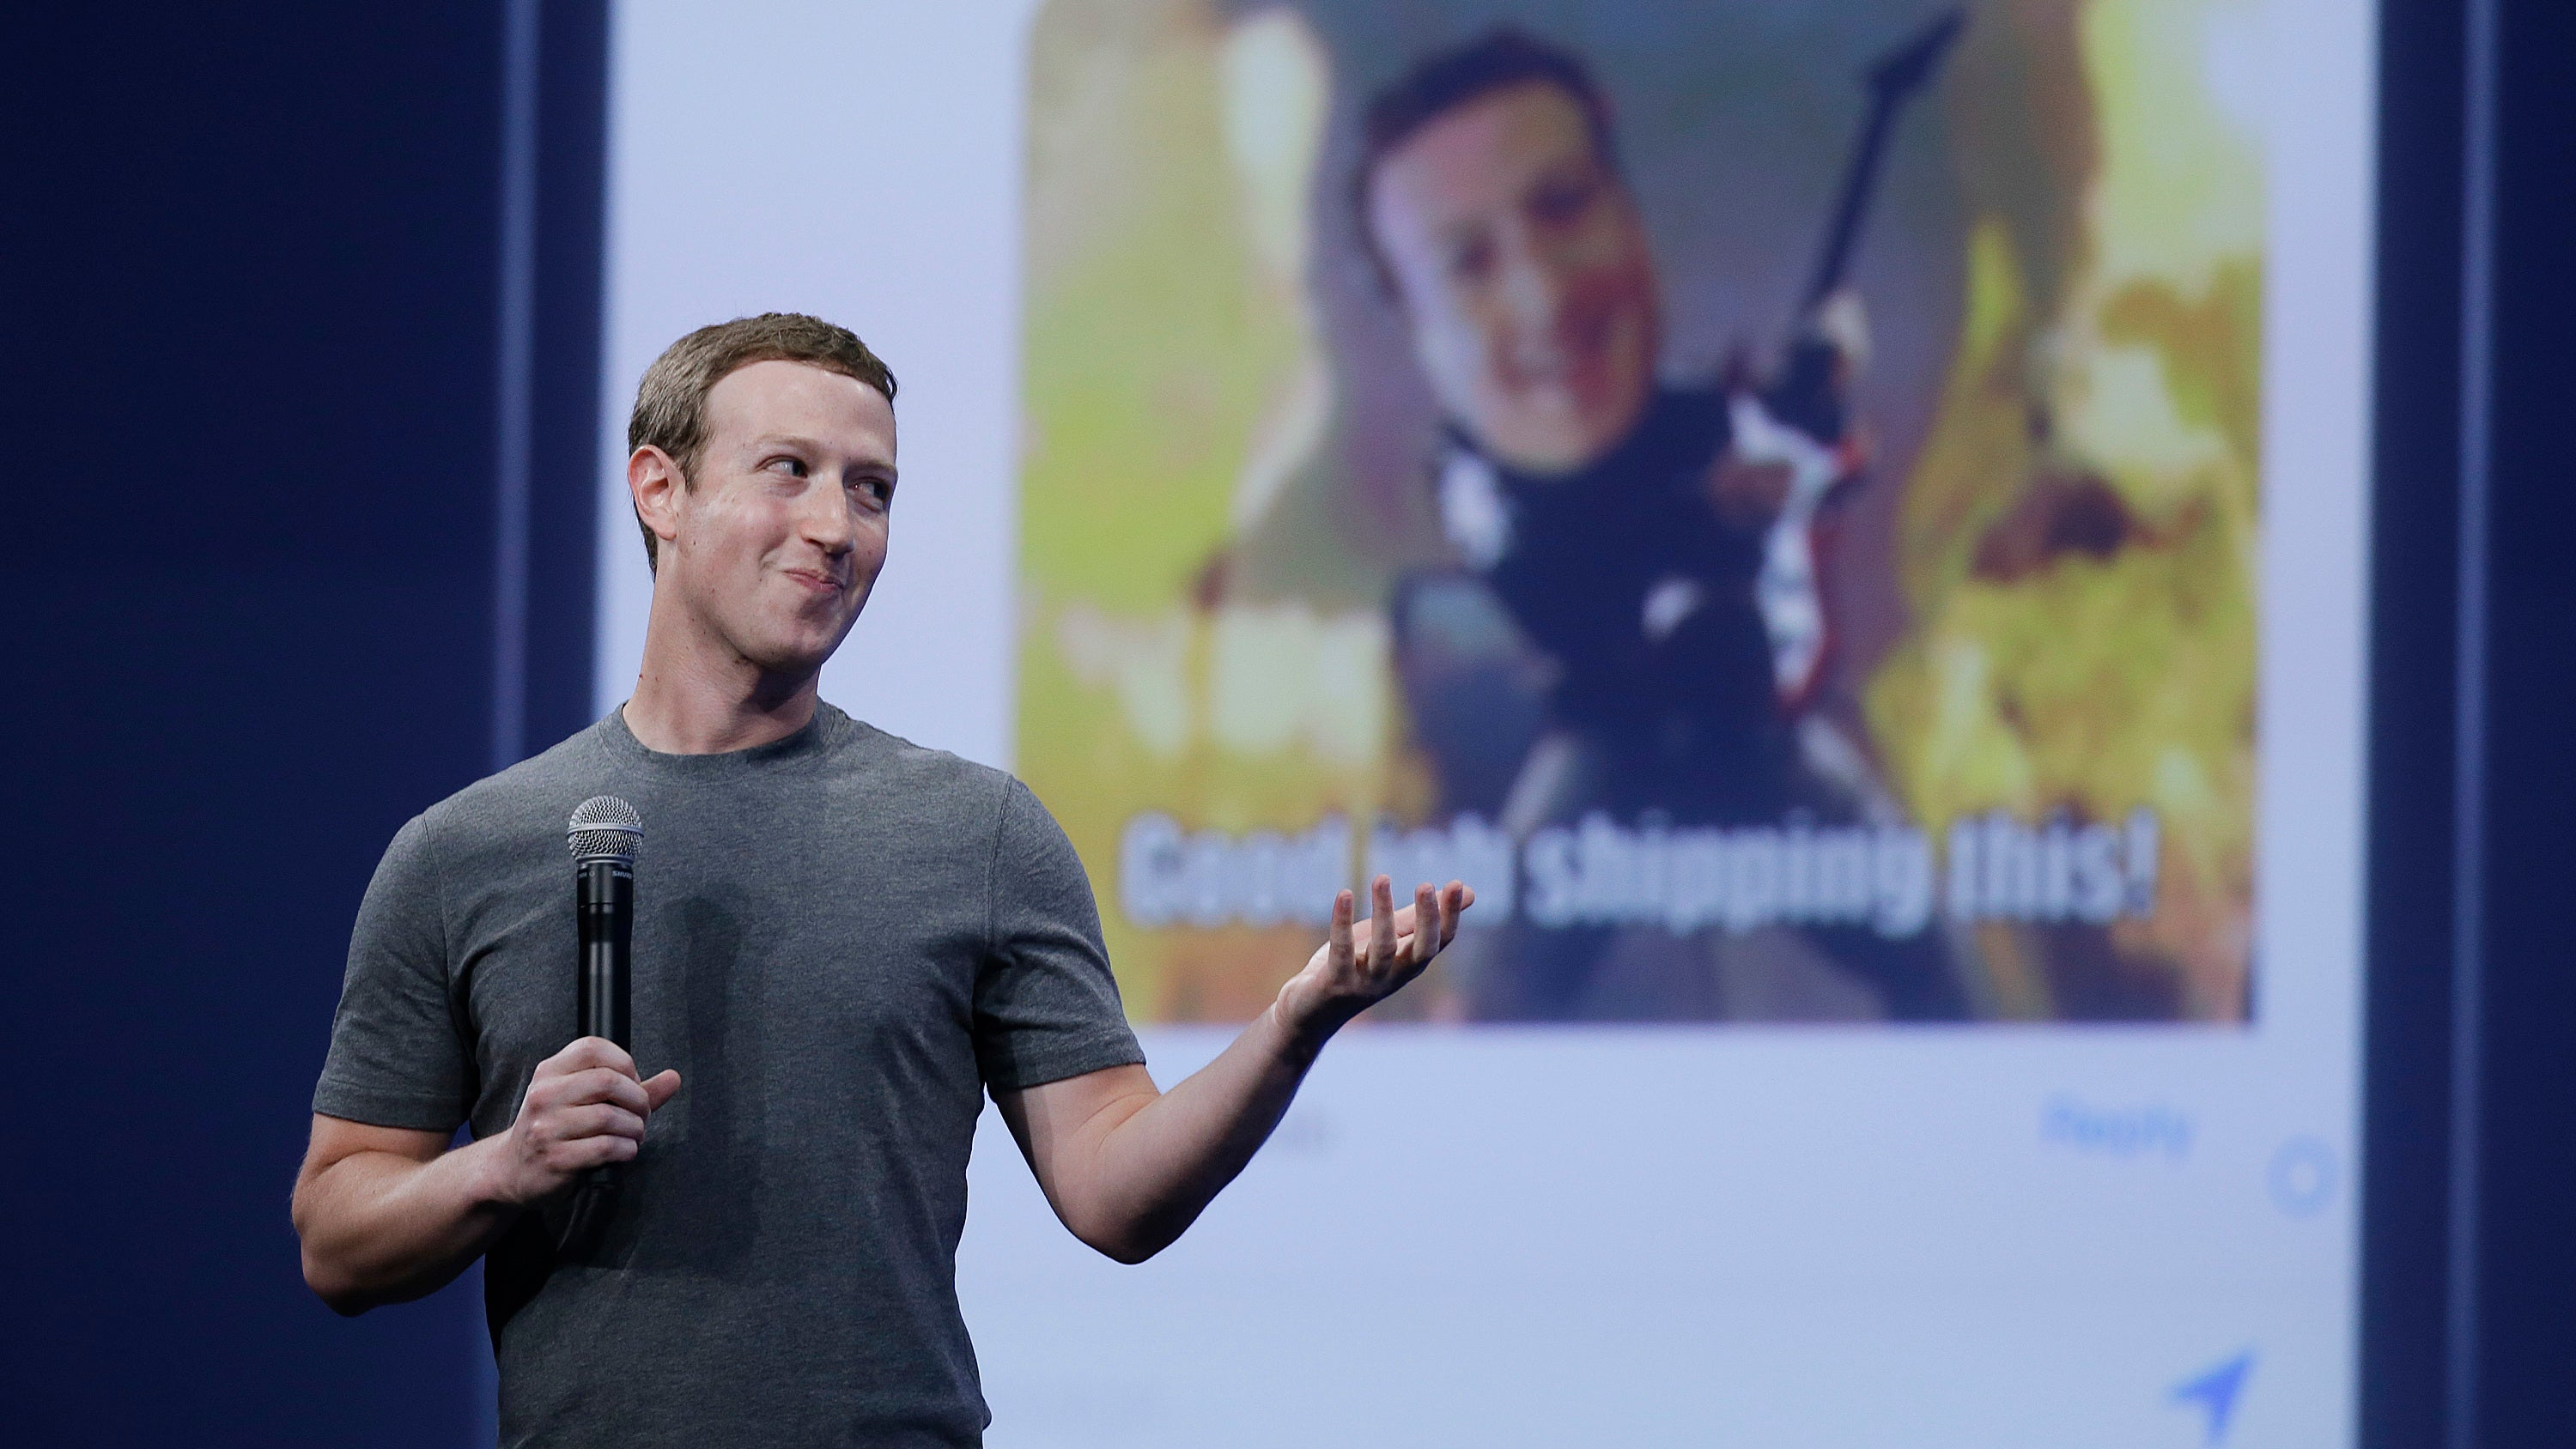 Facebook Just Made A Shocking Admission, And We're All Too Exhausted To Notice